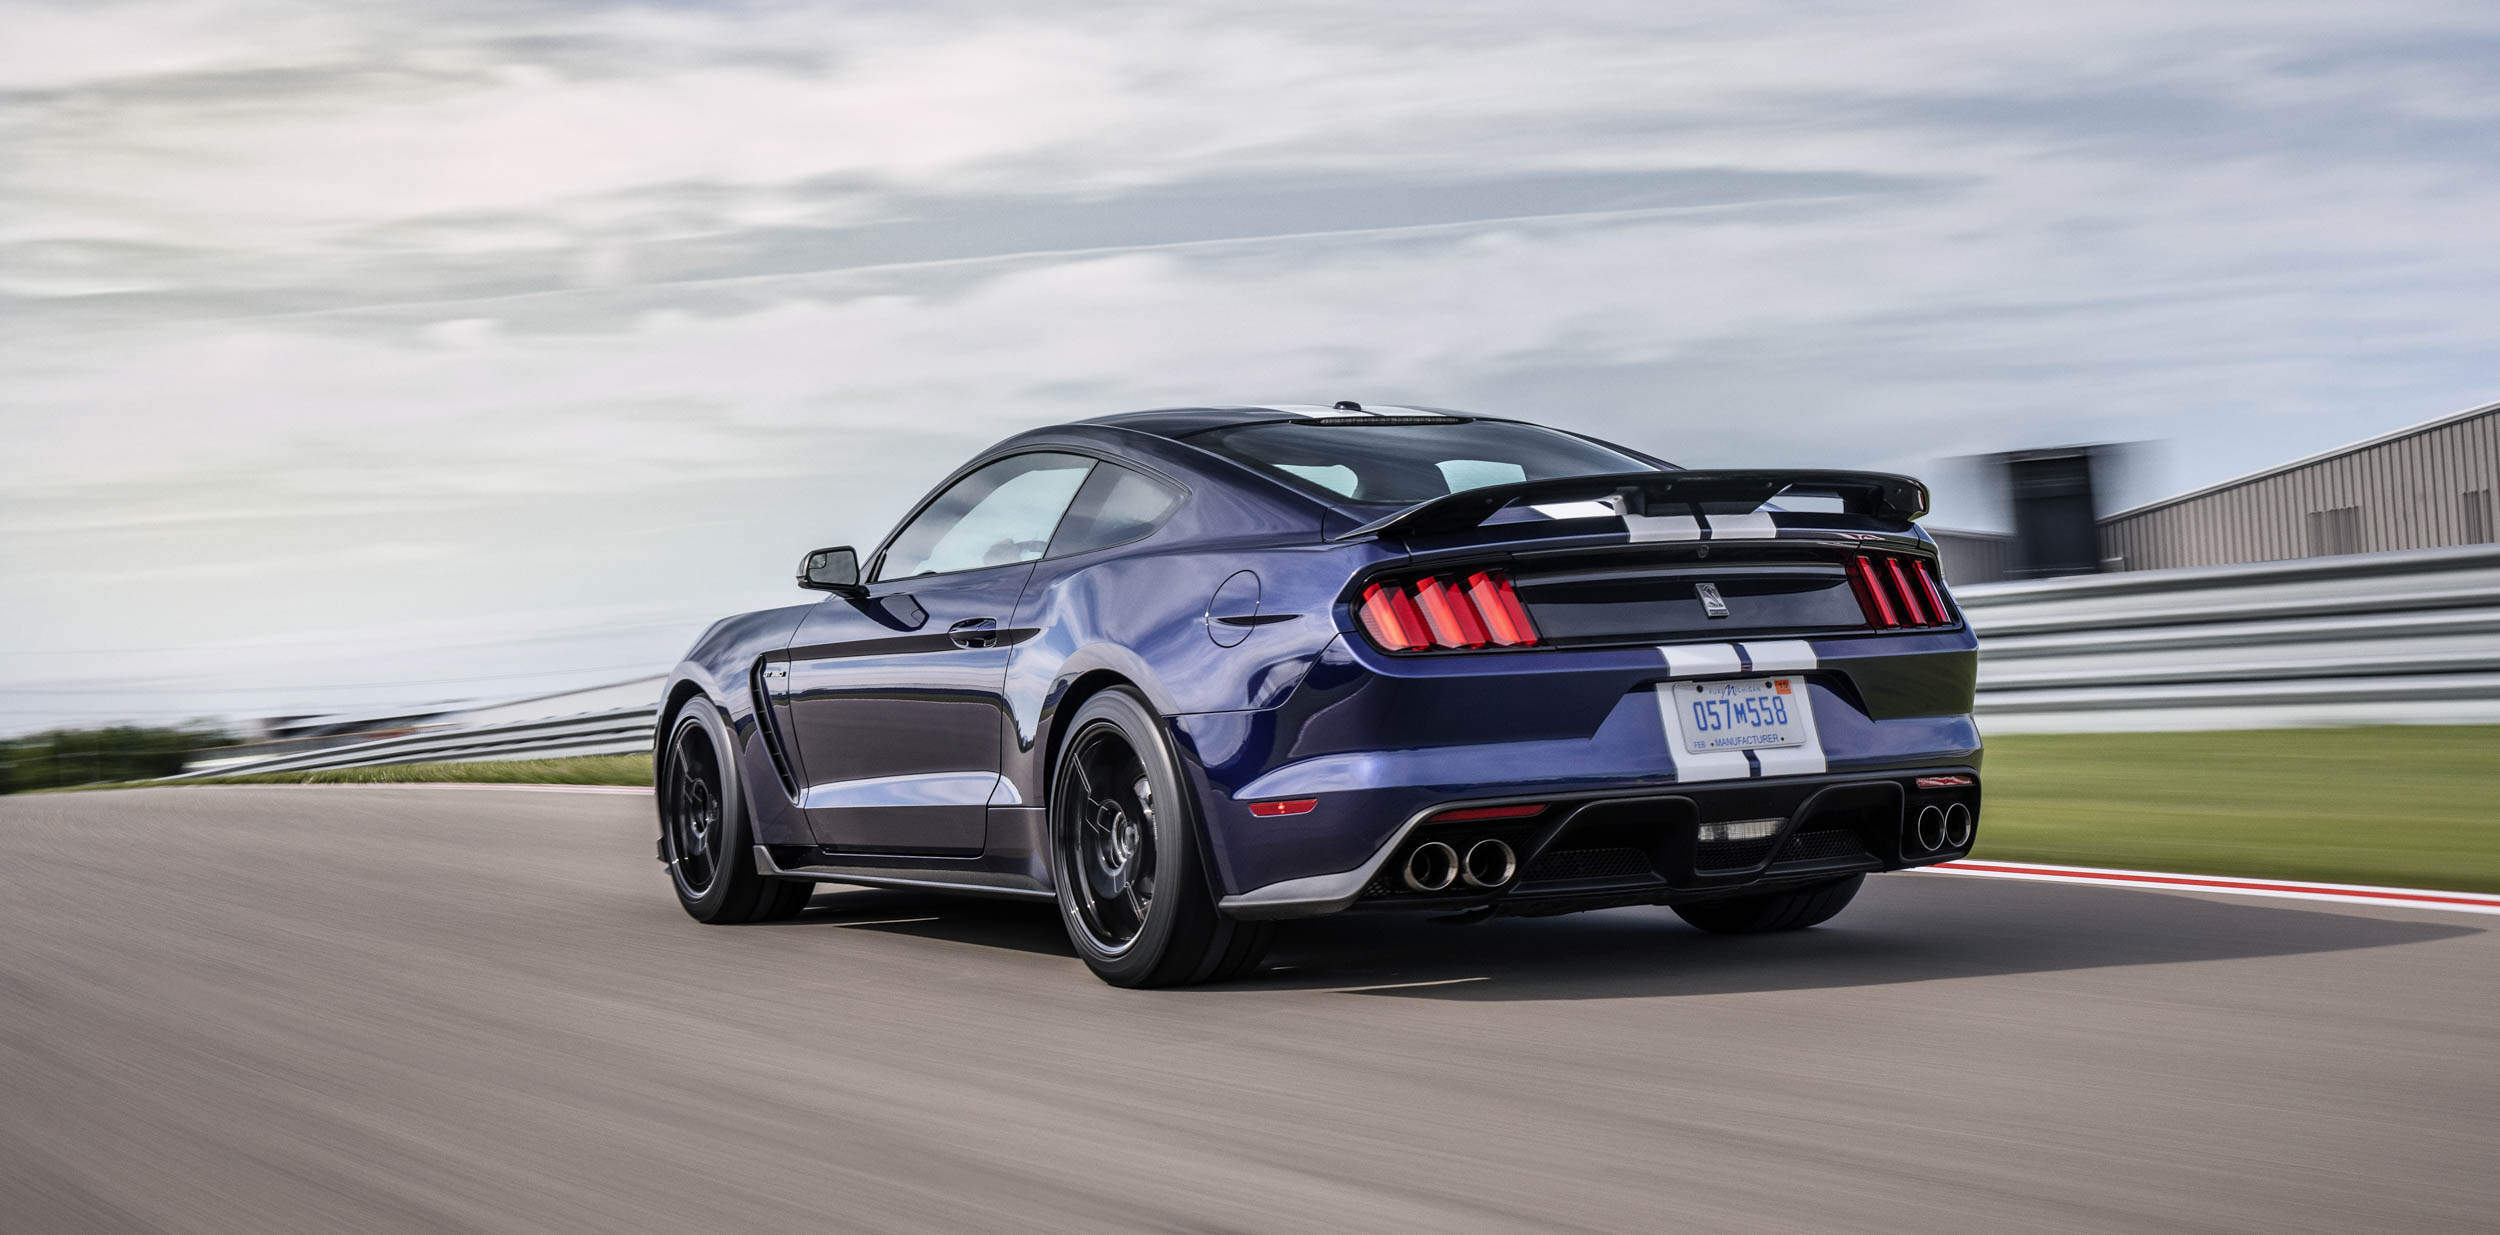 2019 Shelby GT350 rear 3/4 racing on the track